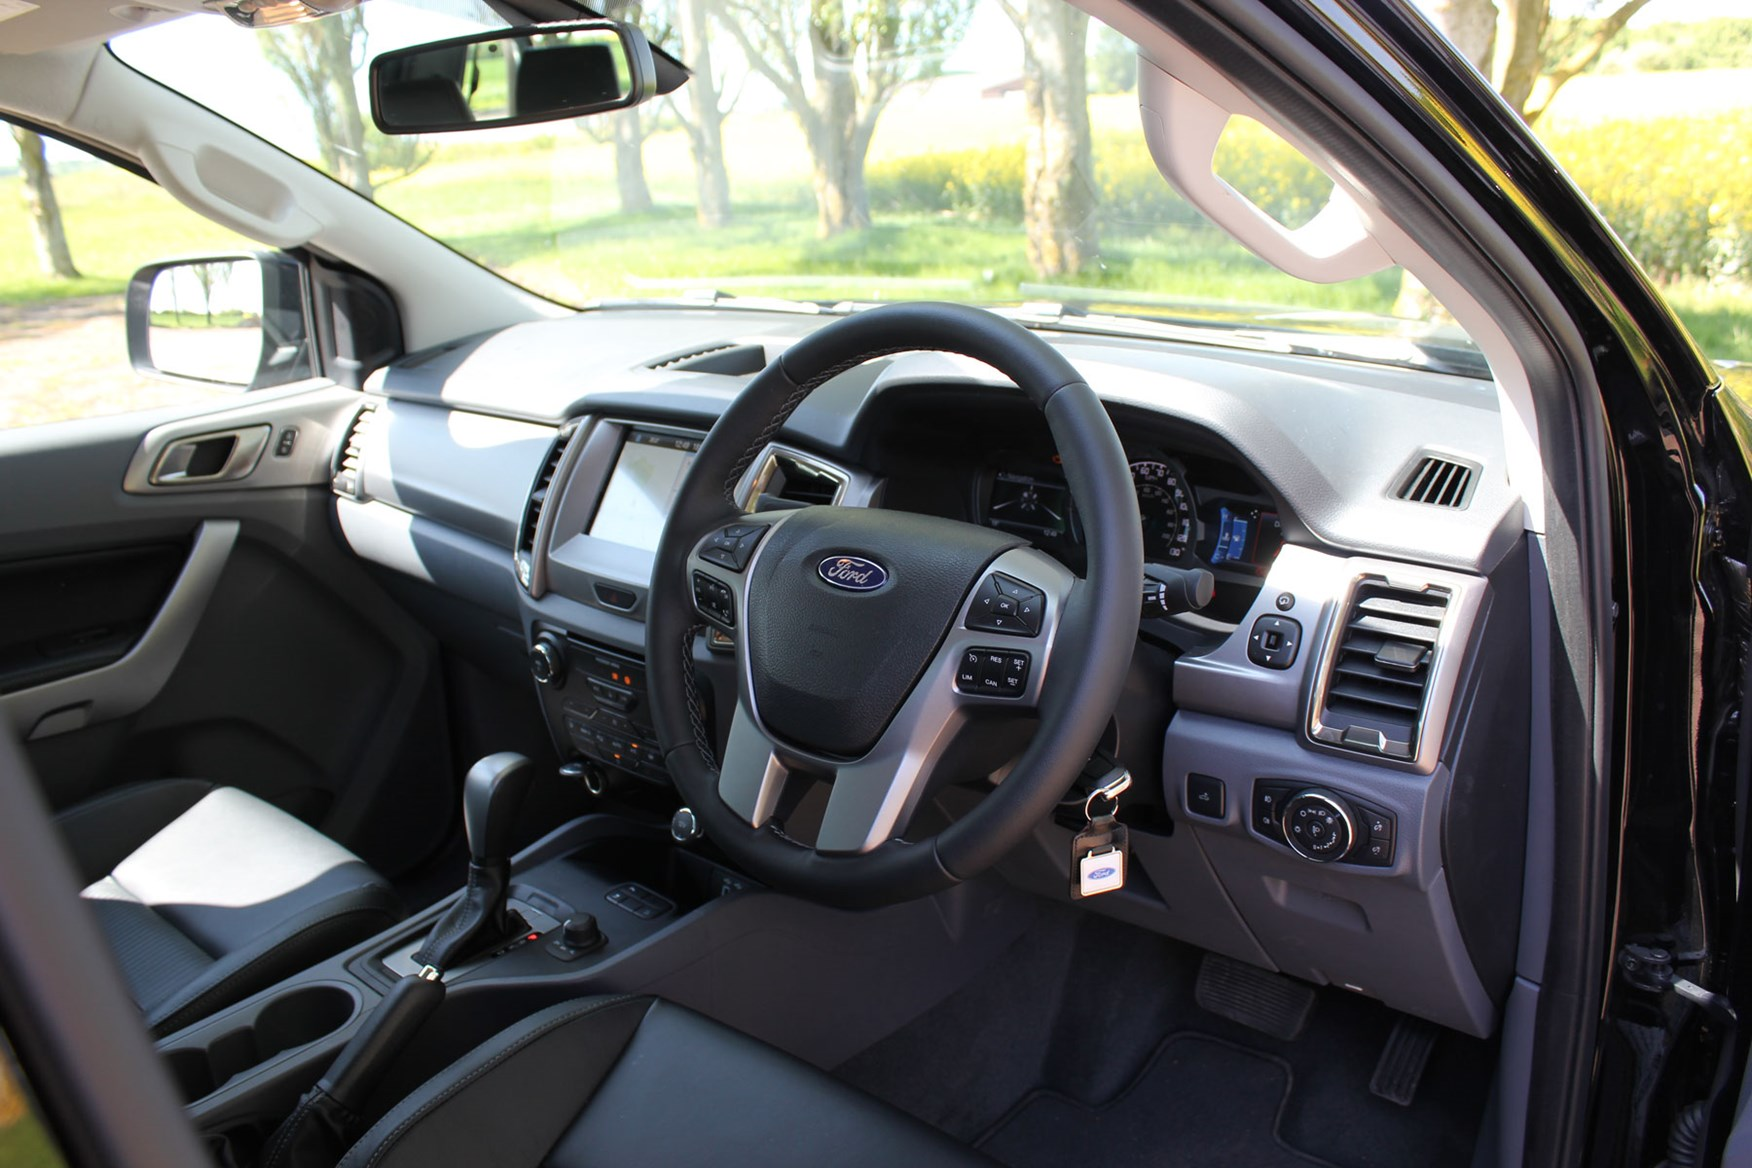 Ford Ranger Black Edition review - cab interior